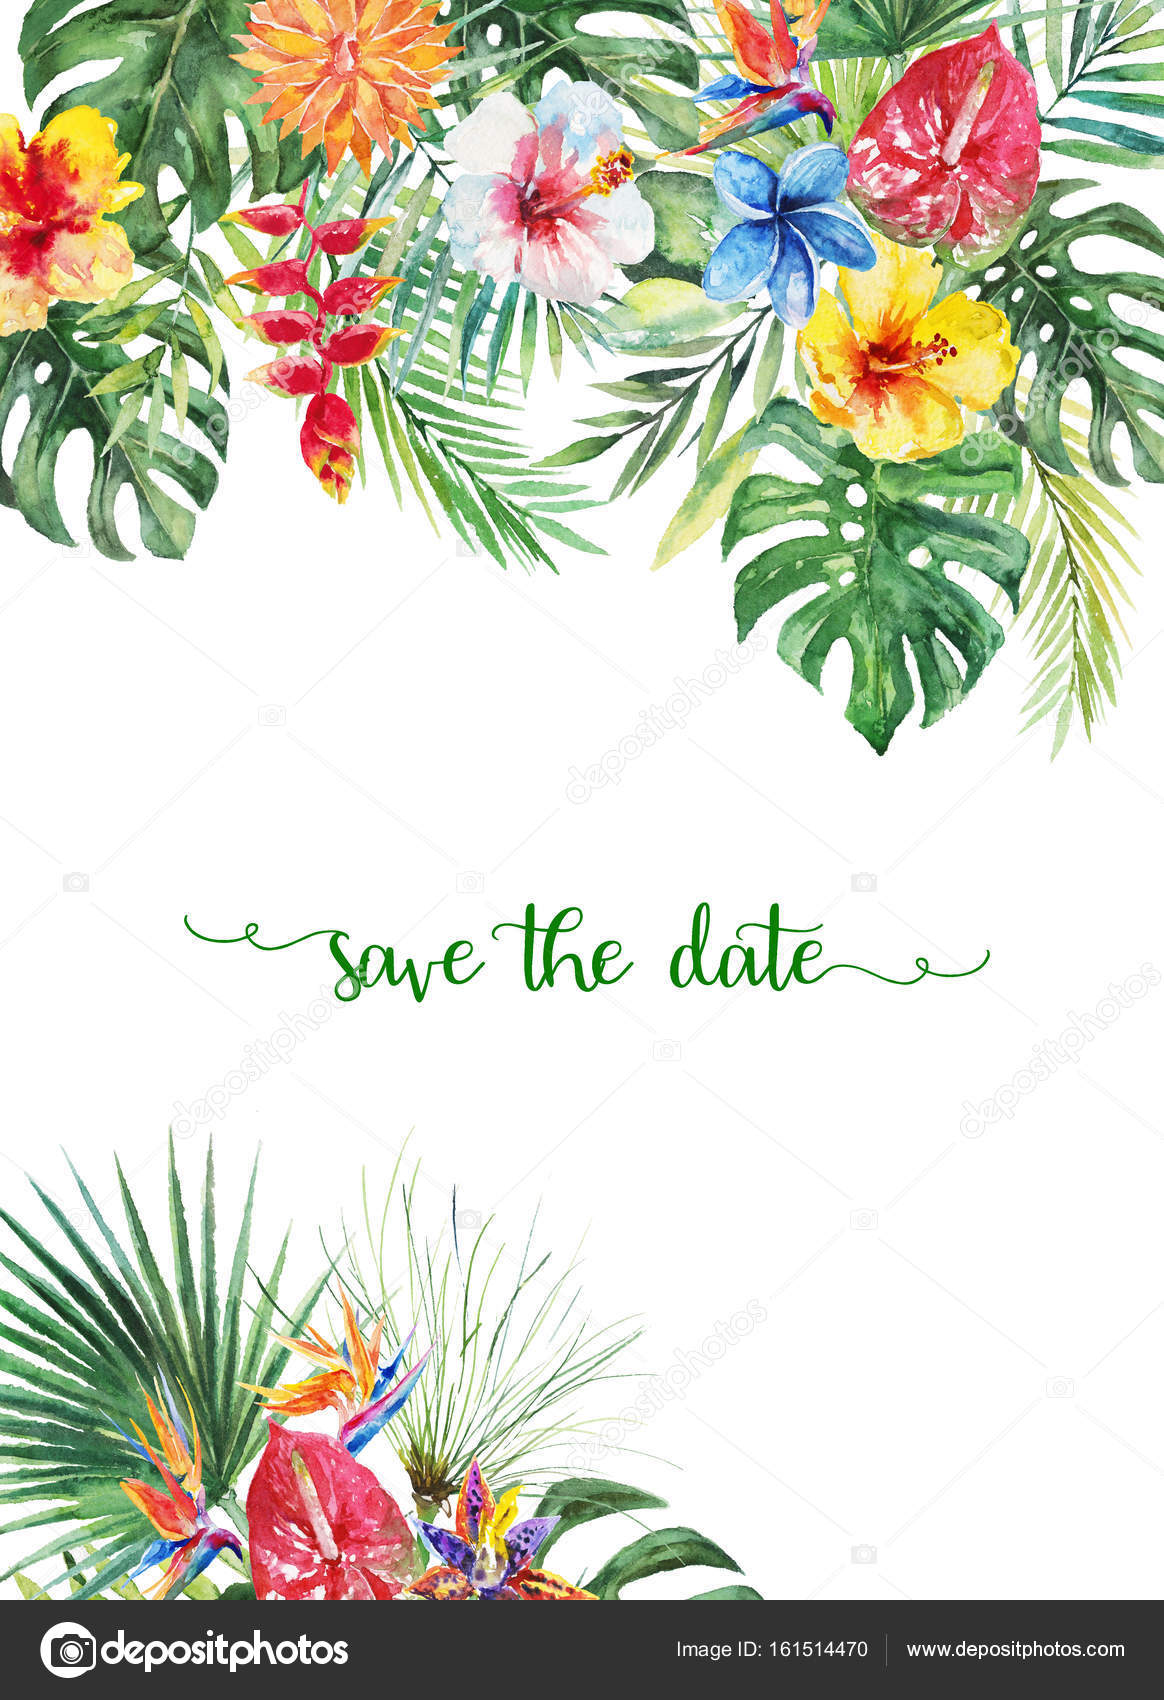 birthday invitation card borders ; depositphotos_161514470-stock-photo-watercolor-tropical-floral-illustration-flower